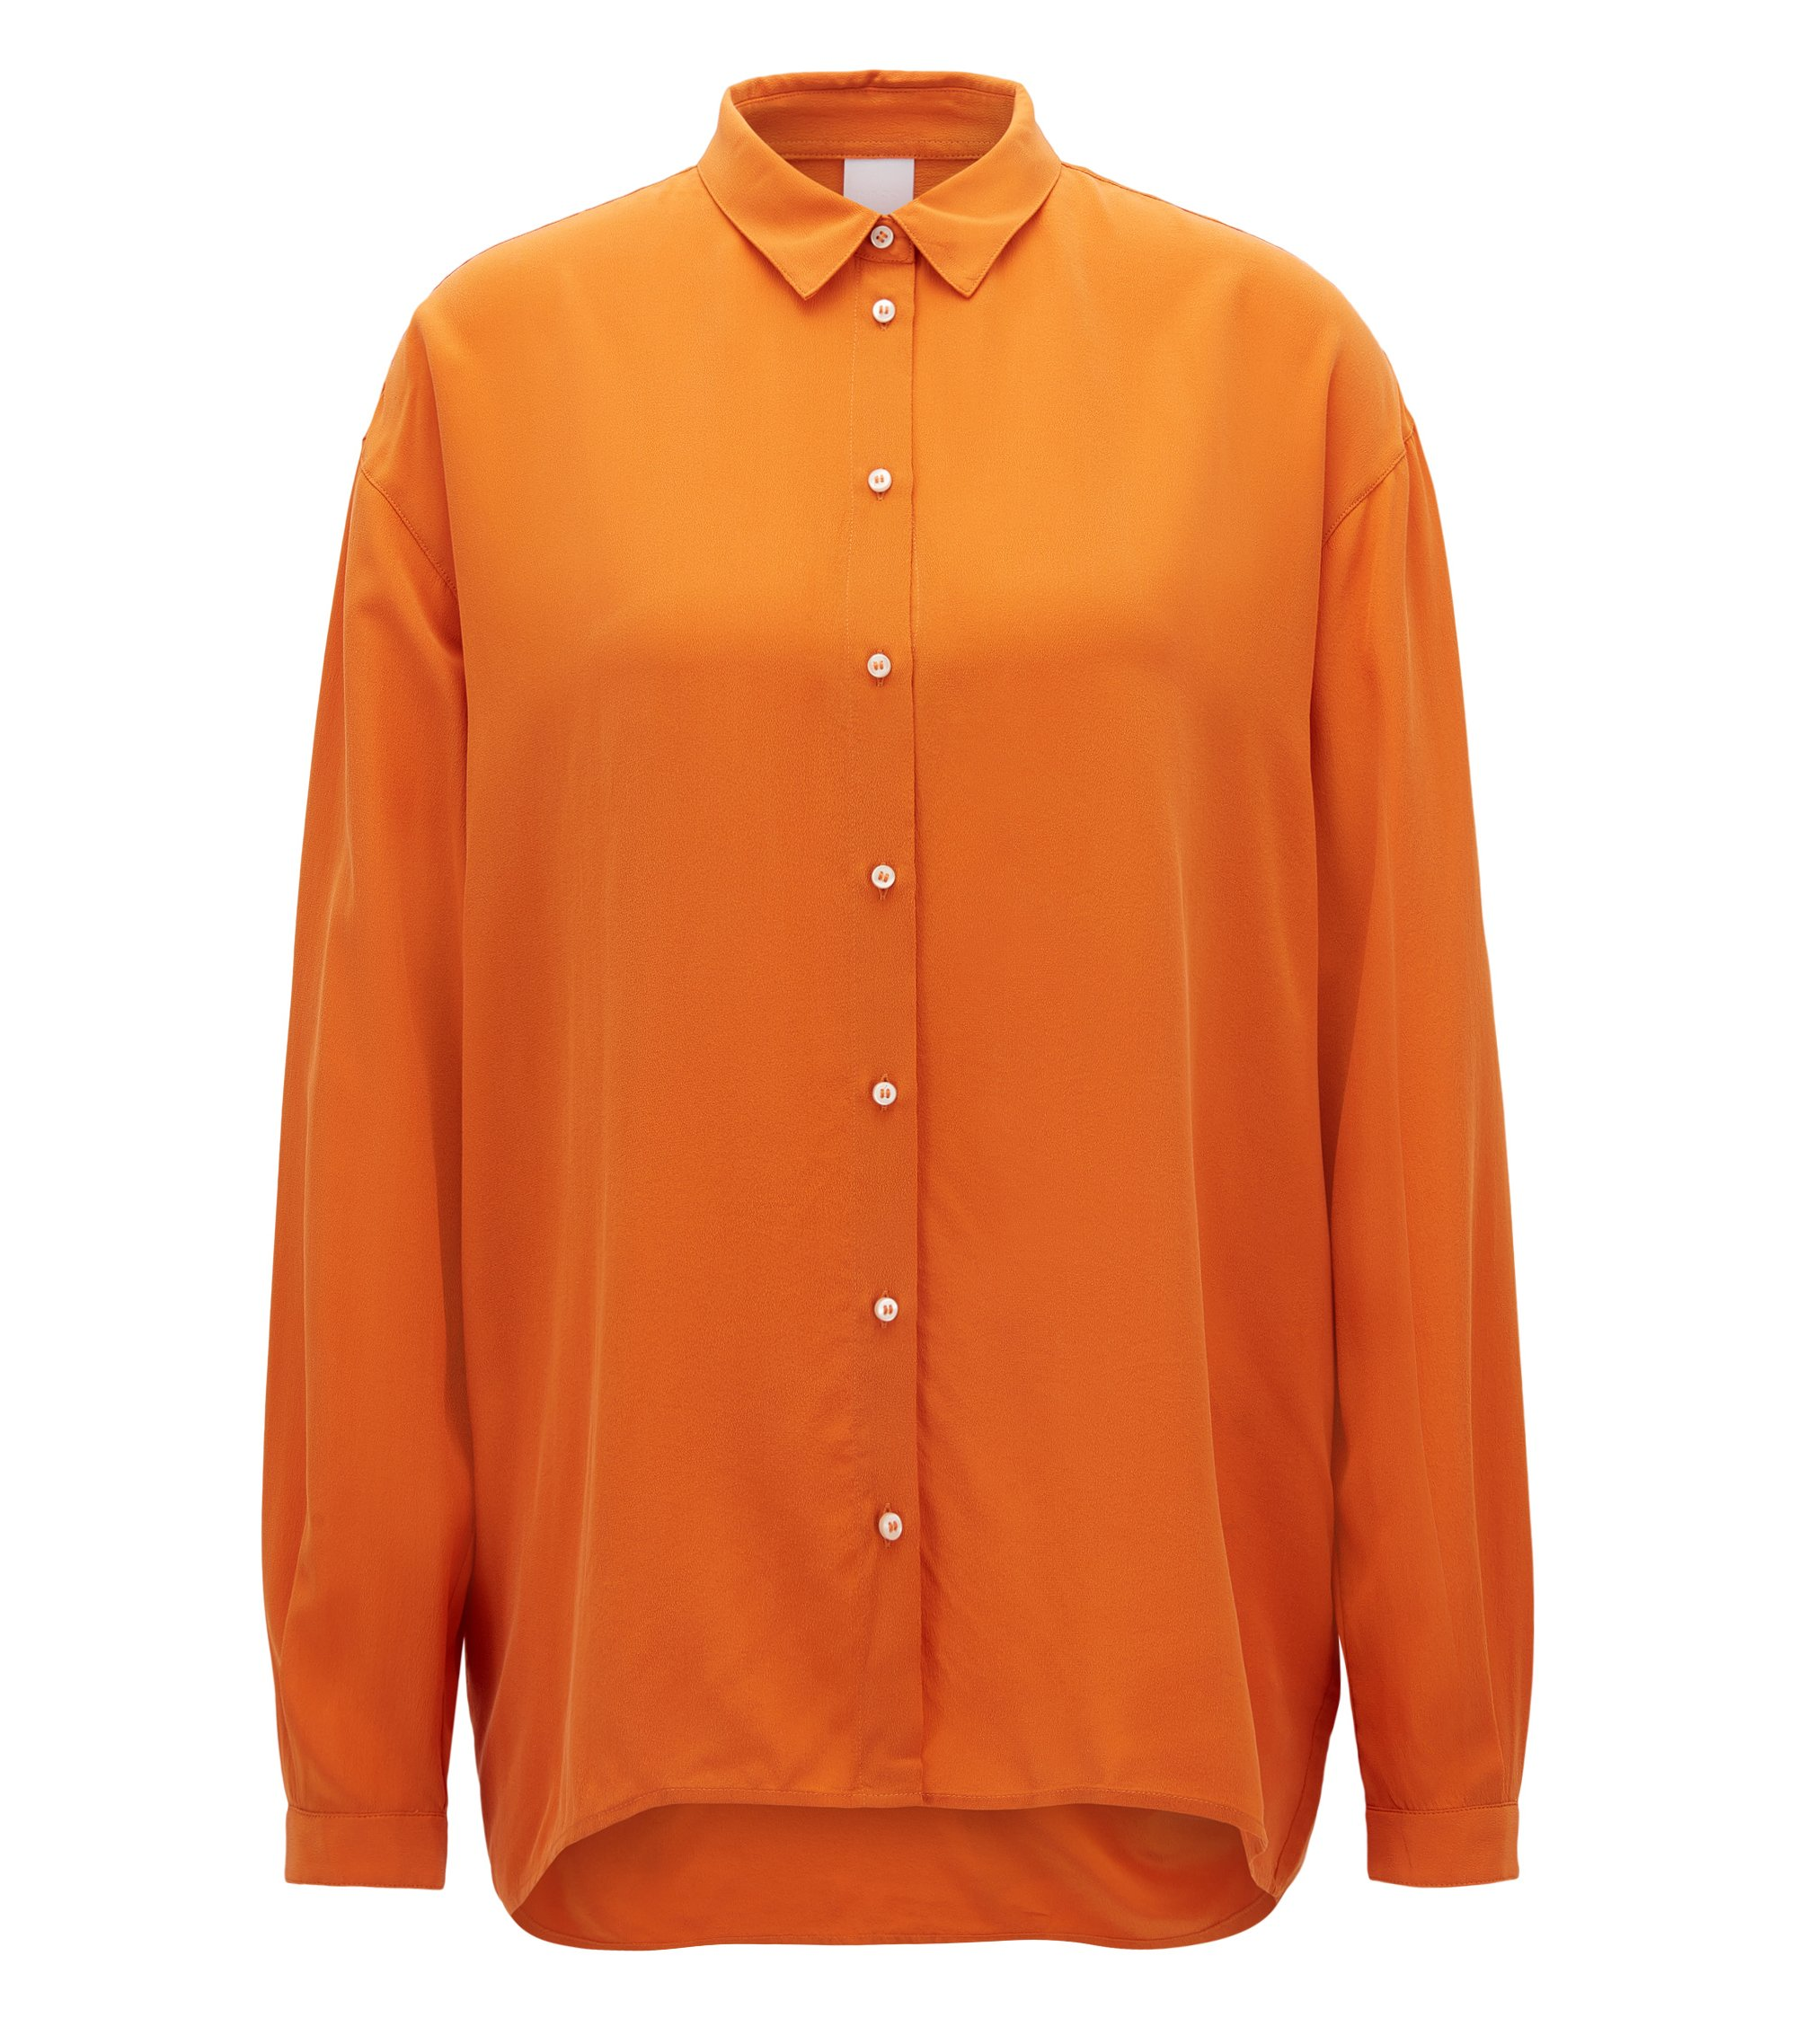 Oversized Bluse aus reiner Seide , Orange